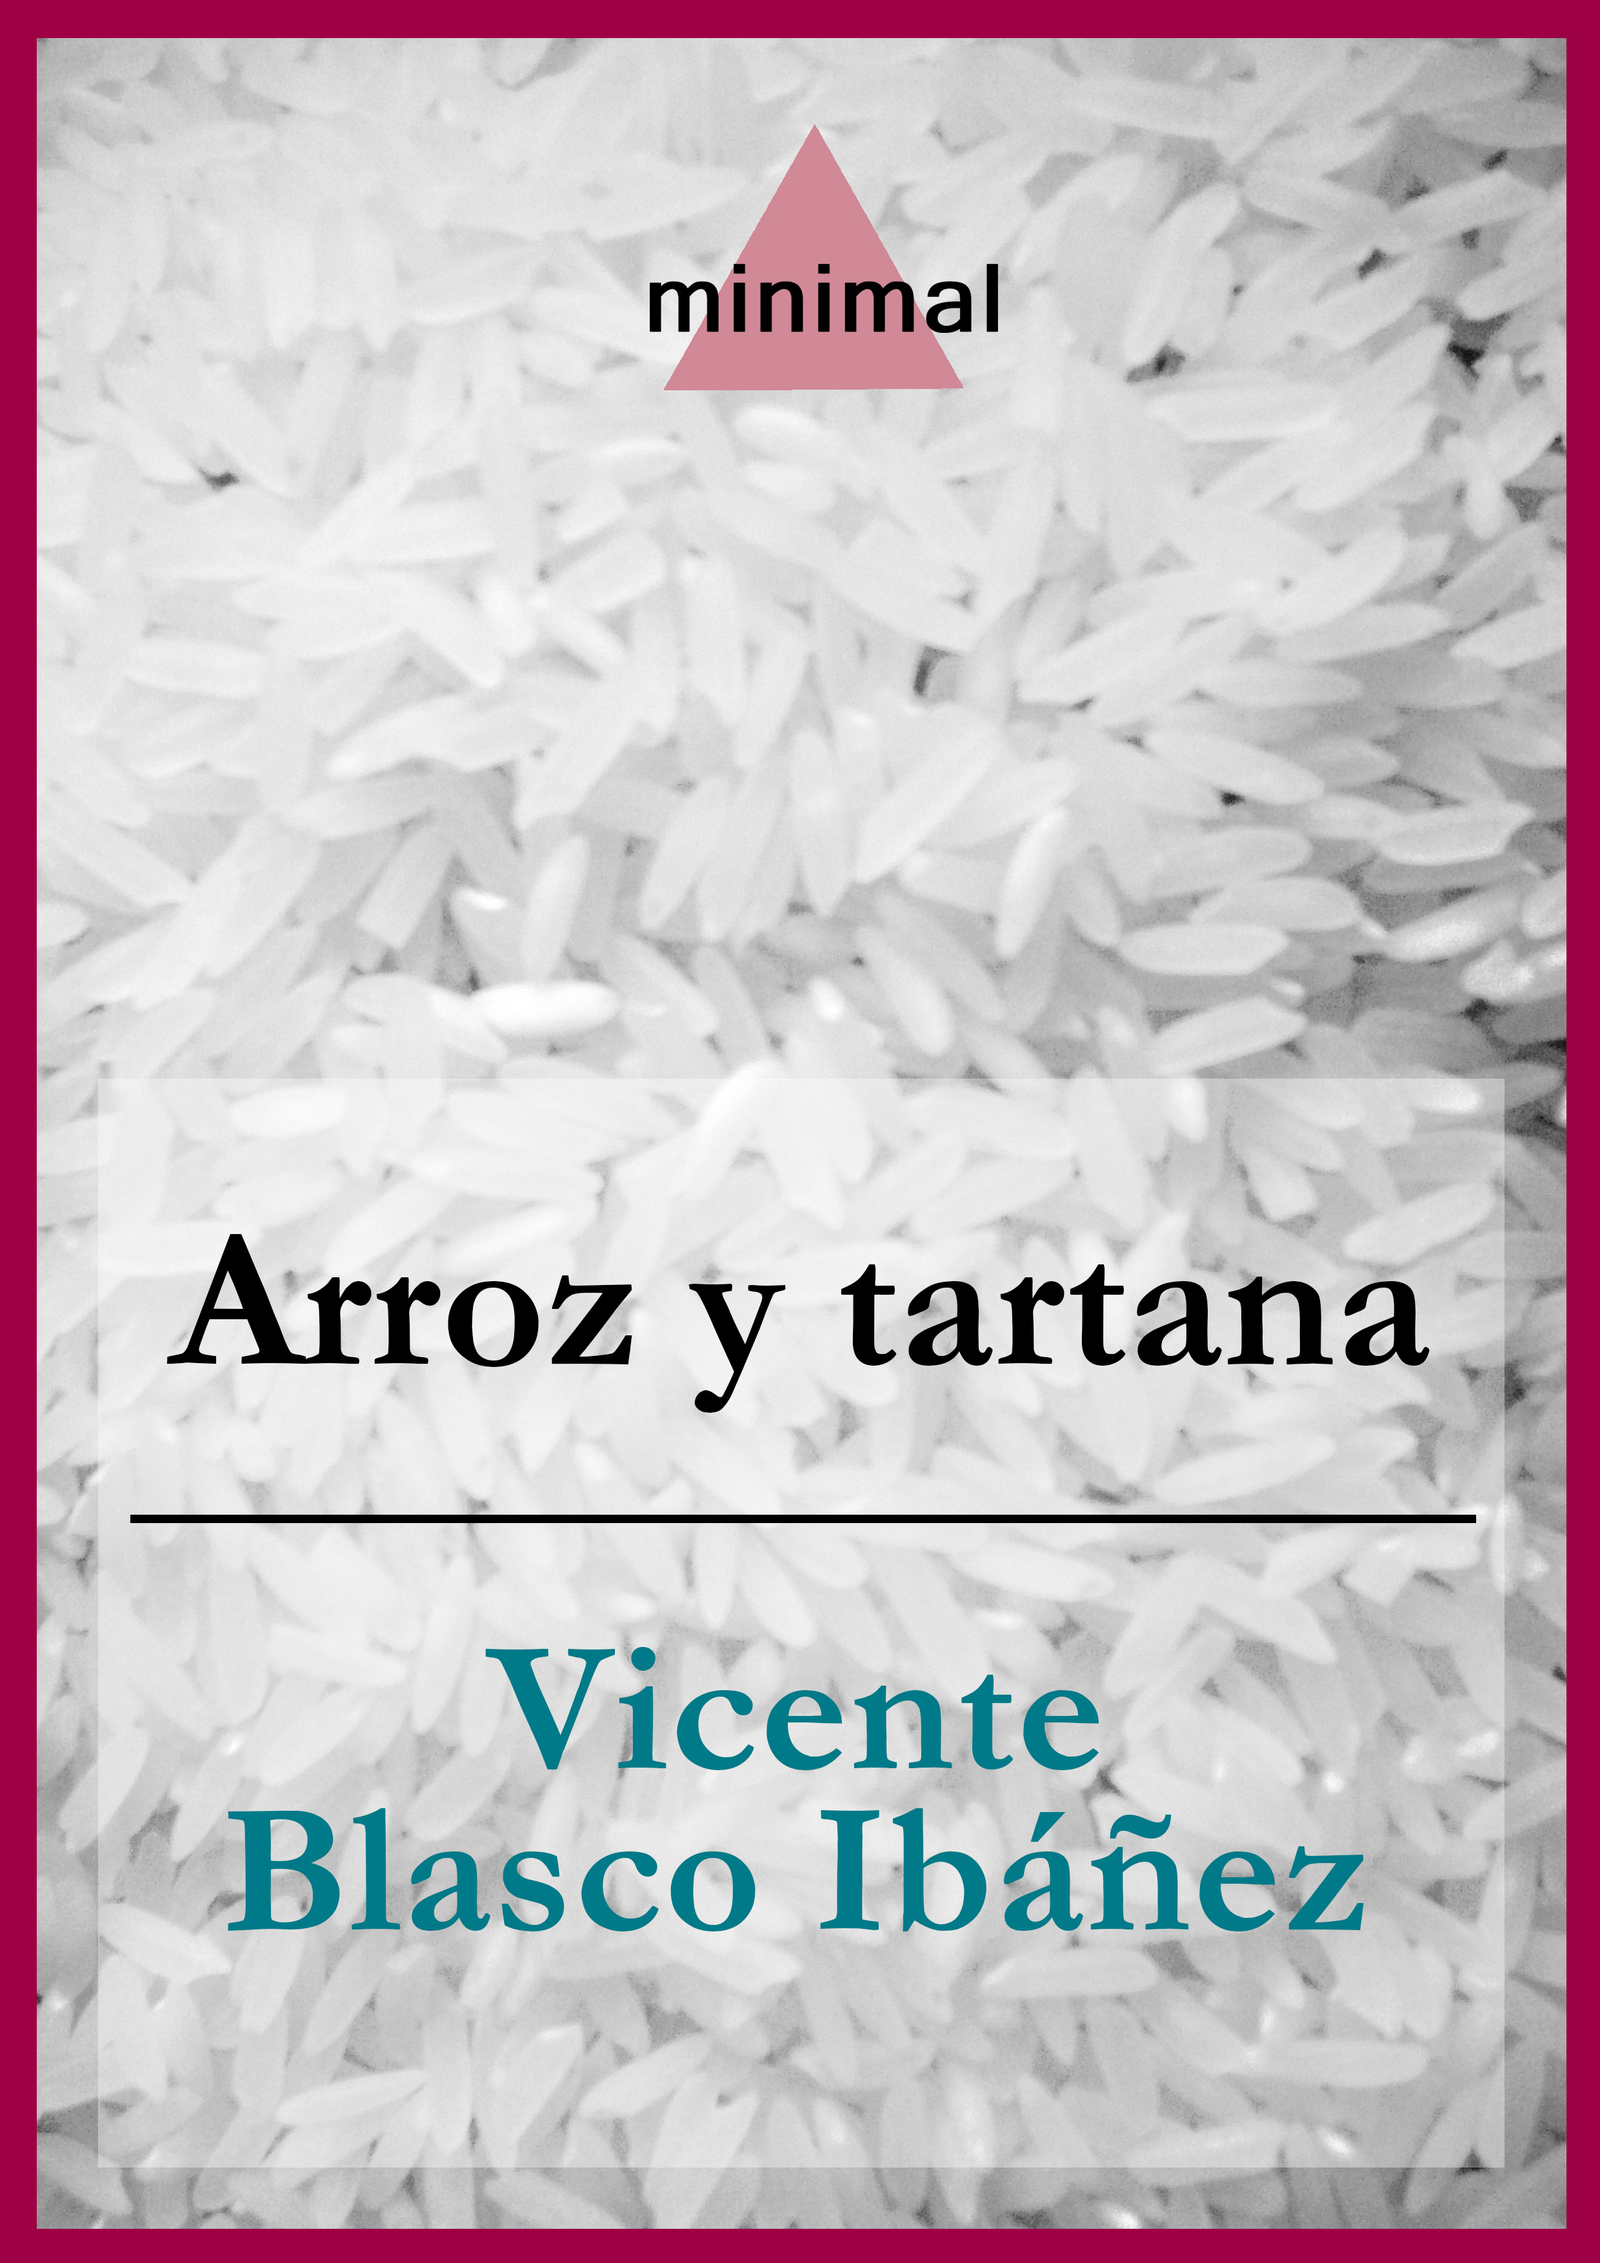 Arroz y tartana